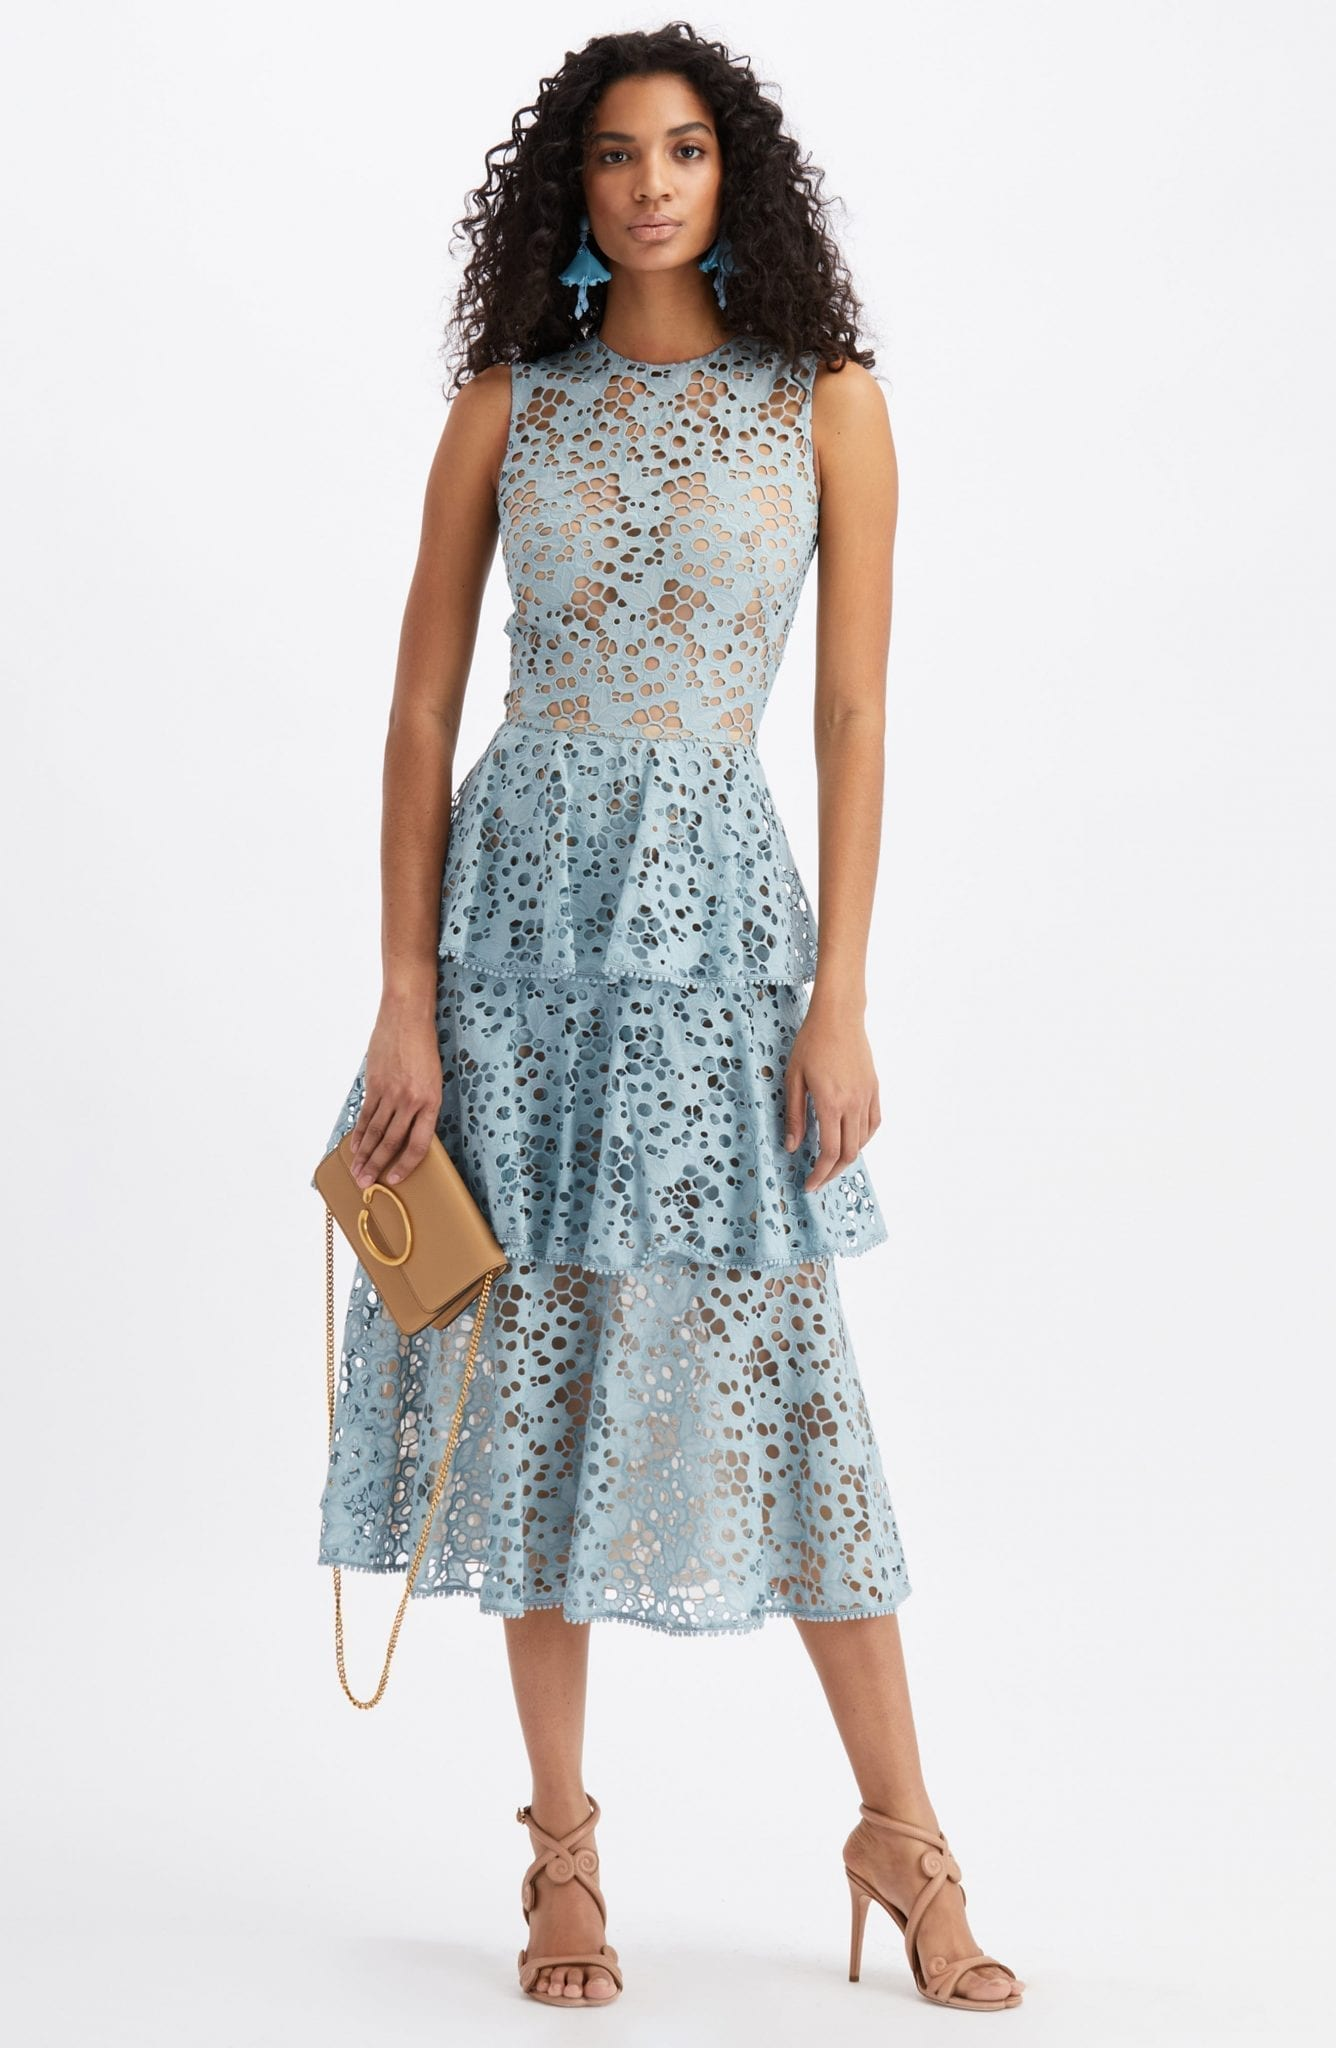 OSCAR DE LA RENTA Tiered Eyelet Midi Dress